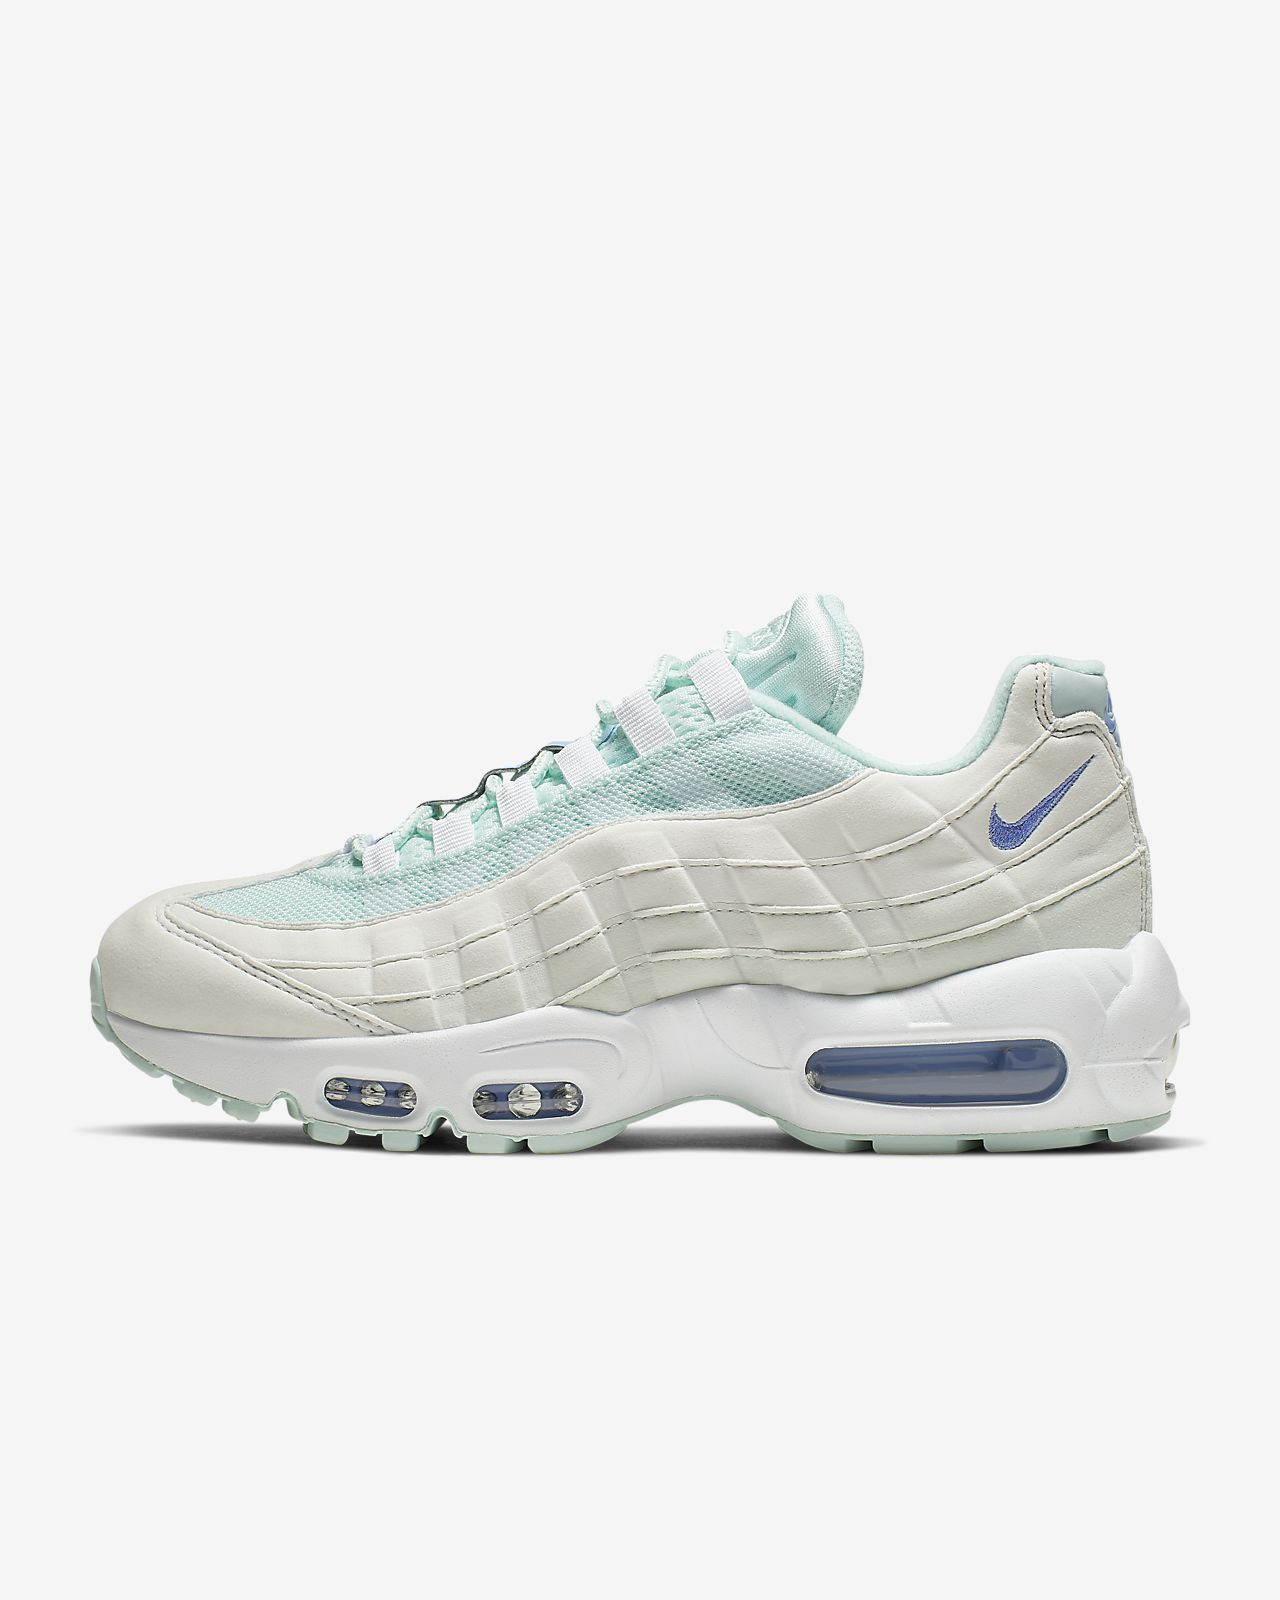 4d3c255280 Nike Air Max 95 Women's Shoe. Nike.com